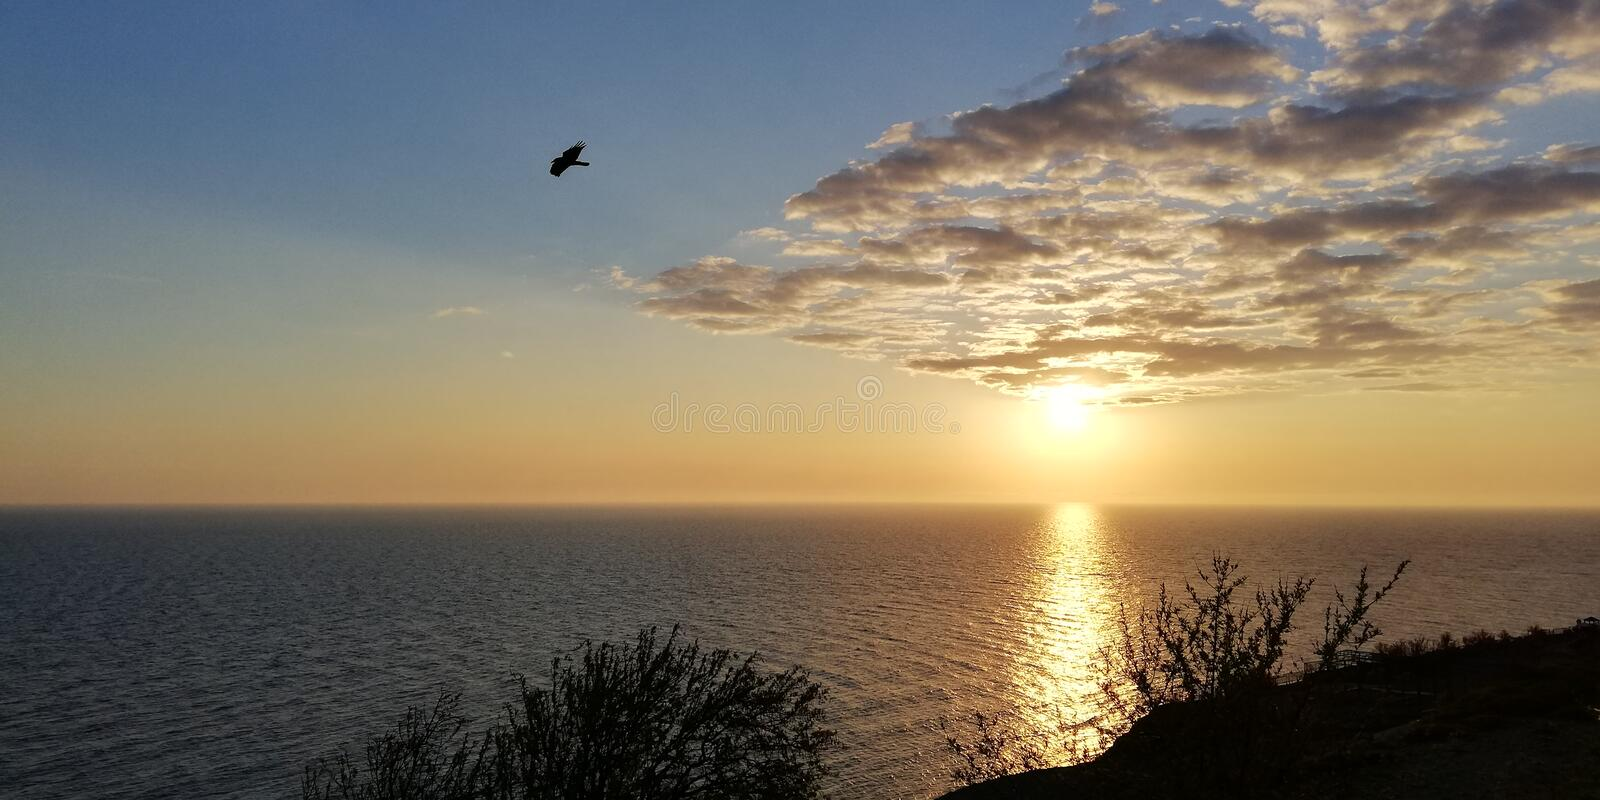 Sea evening sunset landscape. Unusual white clouds reaching the wedge. Ahead is the silhouette of a flying bird. Background stock images